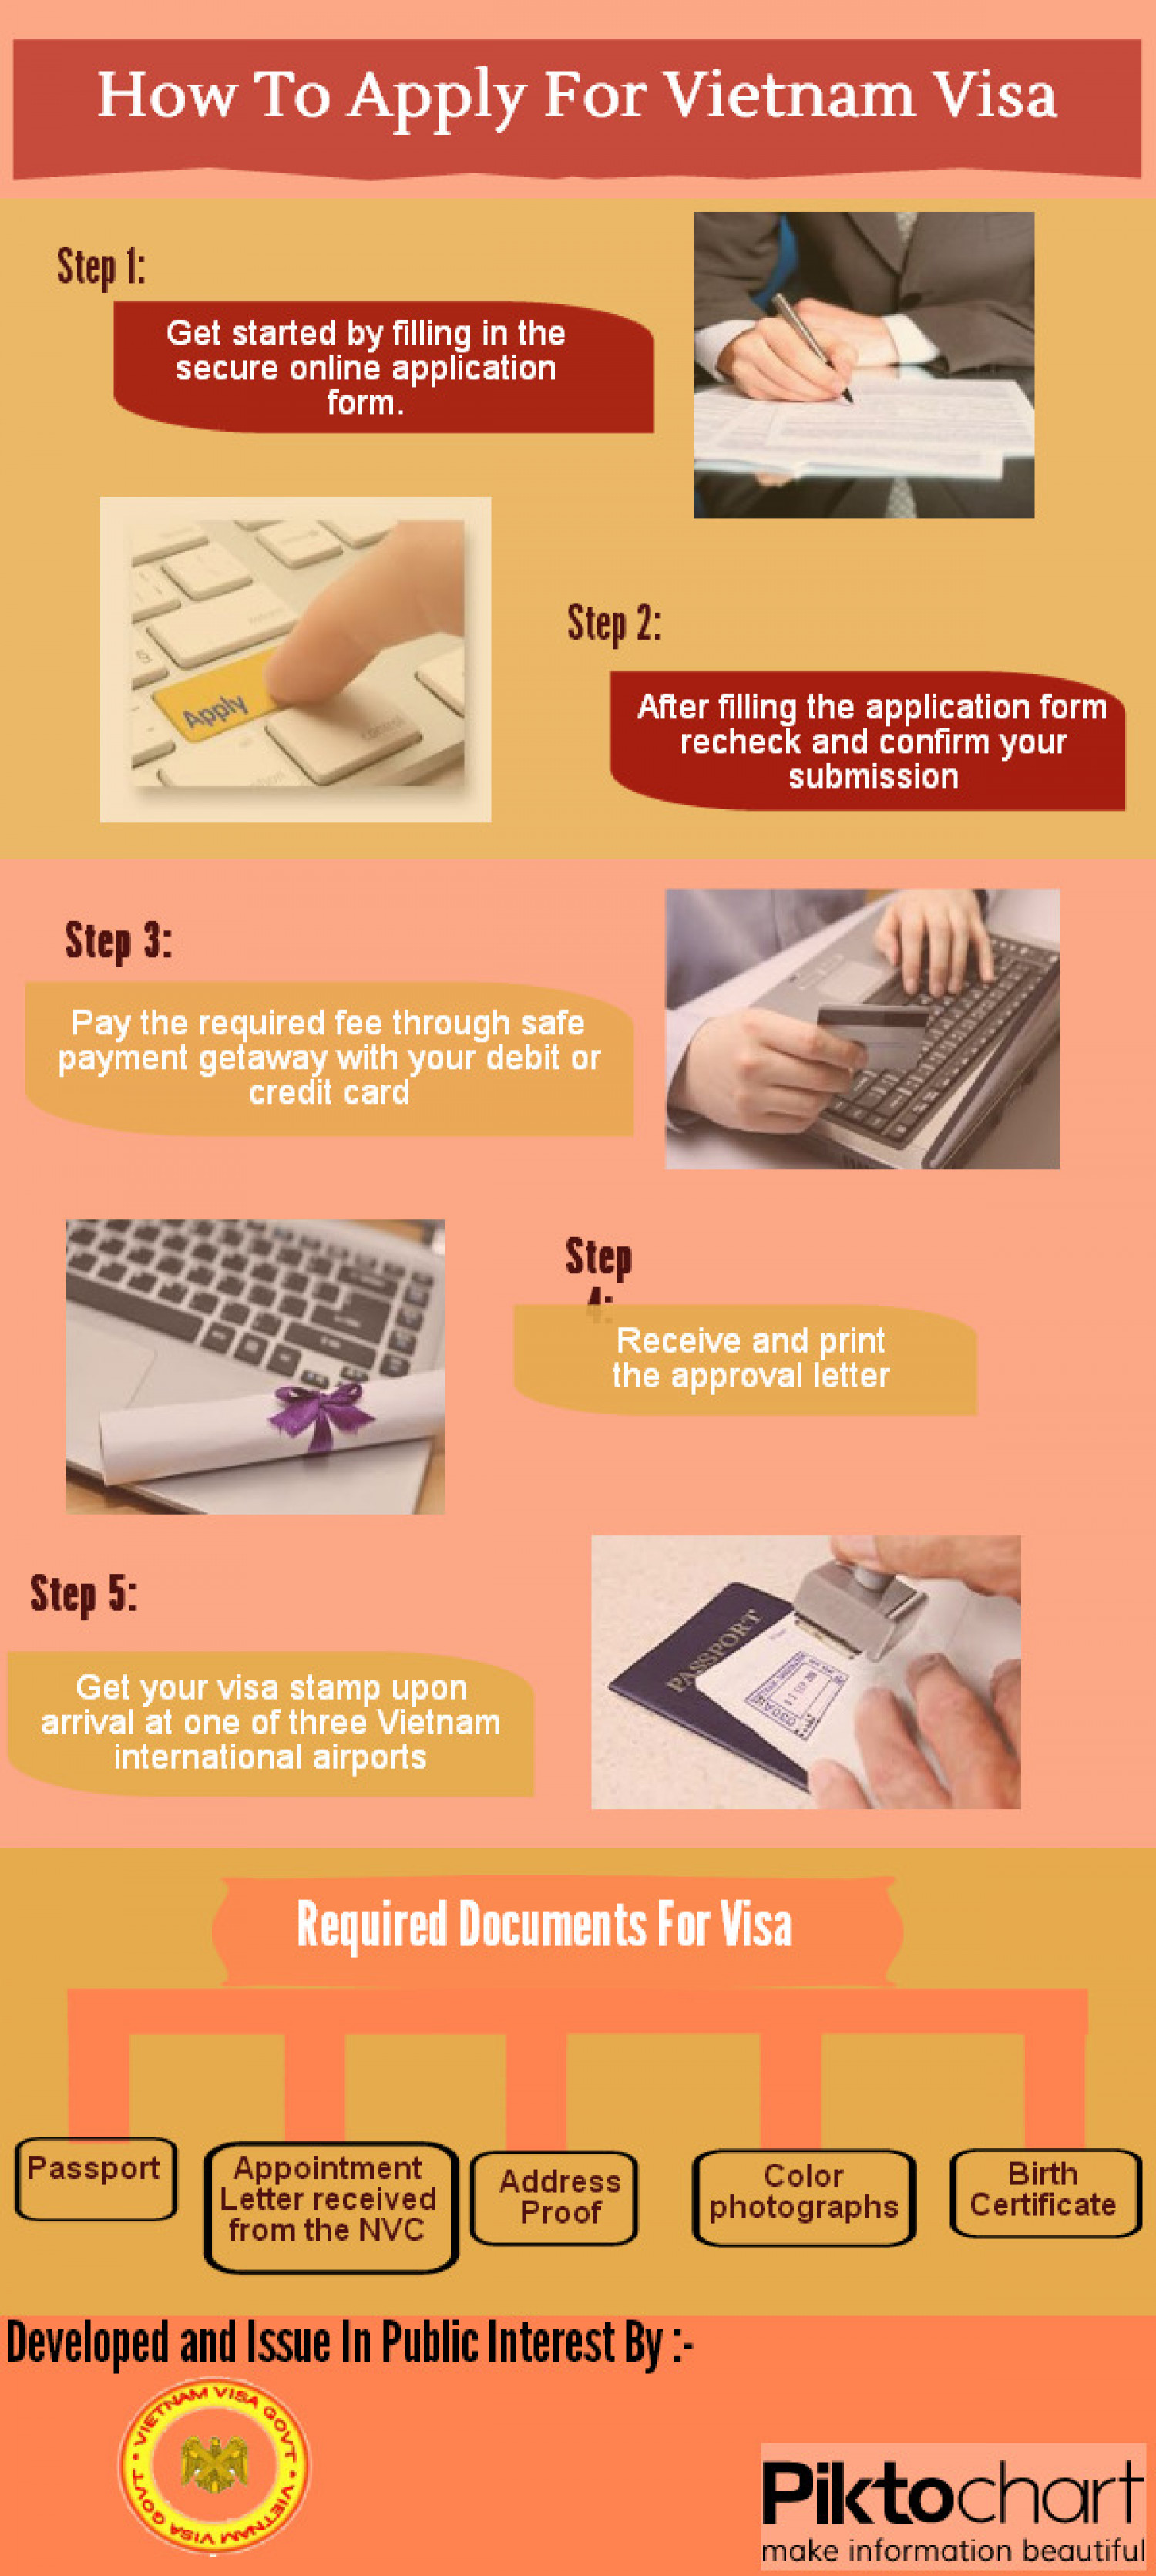 How To Apply For Vietnam Visa Infographic